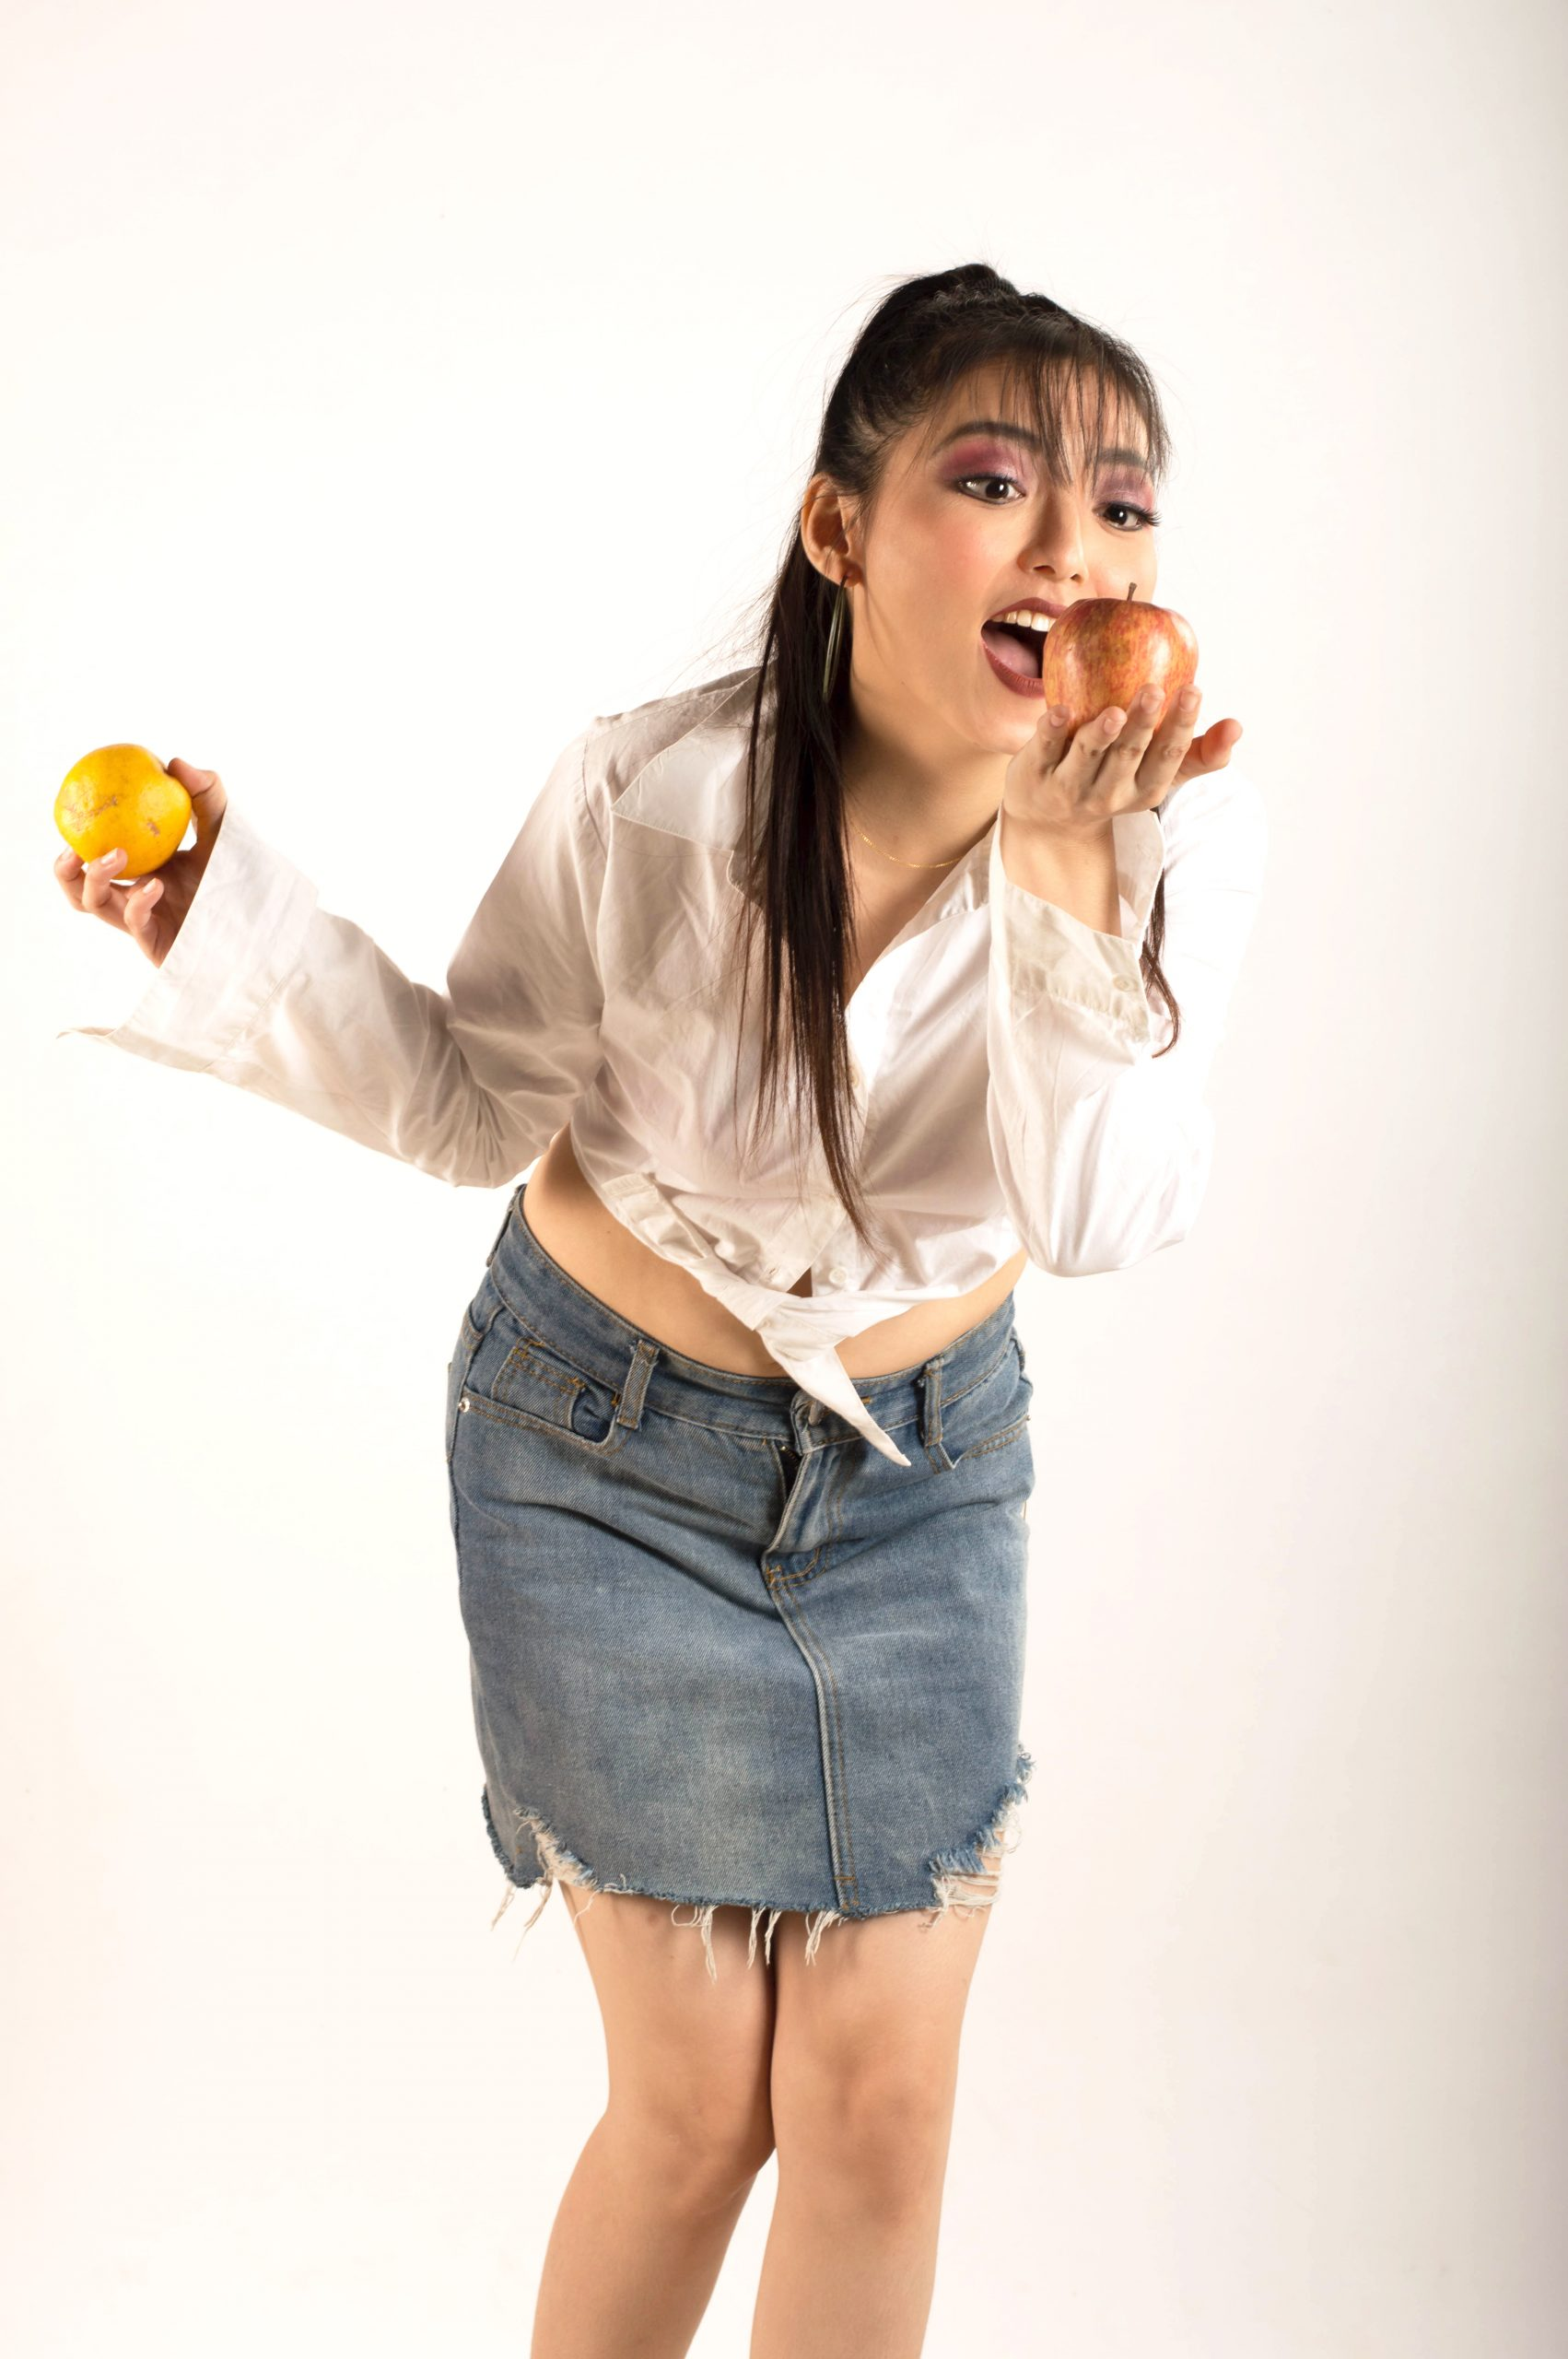 A fashion model eating an apple